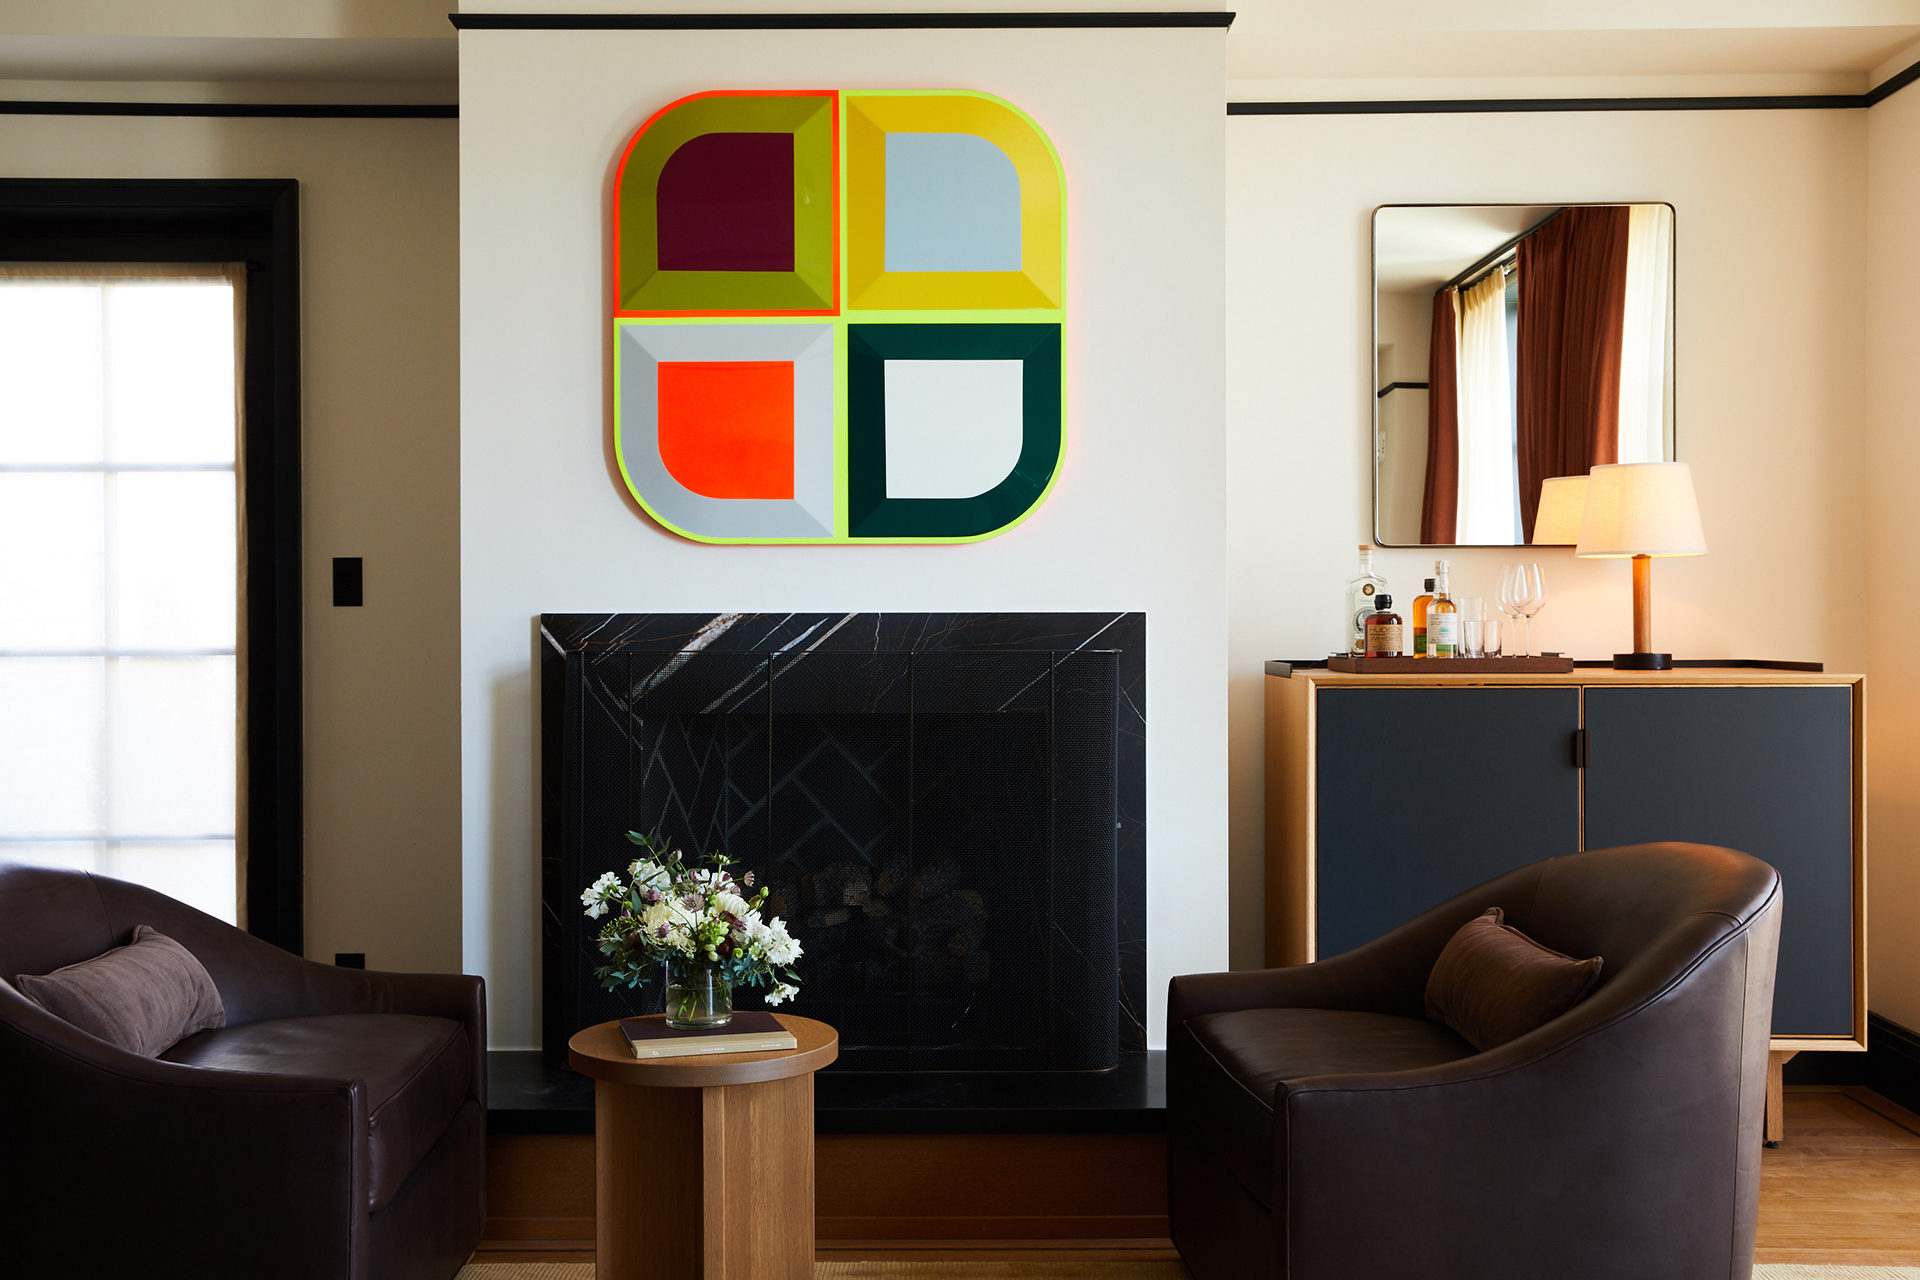 Mid-century modern furniture, bright artworks, and plush furniture is peppered throughout the rooms | Shinola Hotel| Gachot Studio | STIR